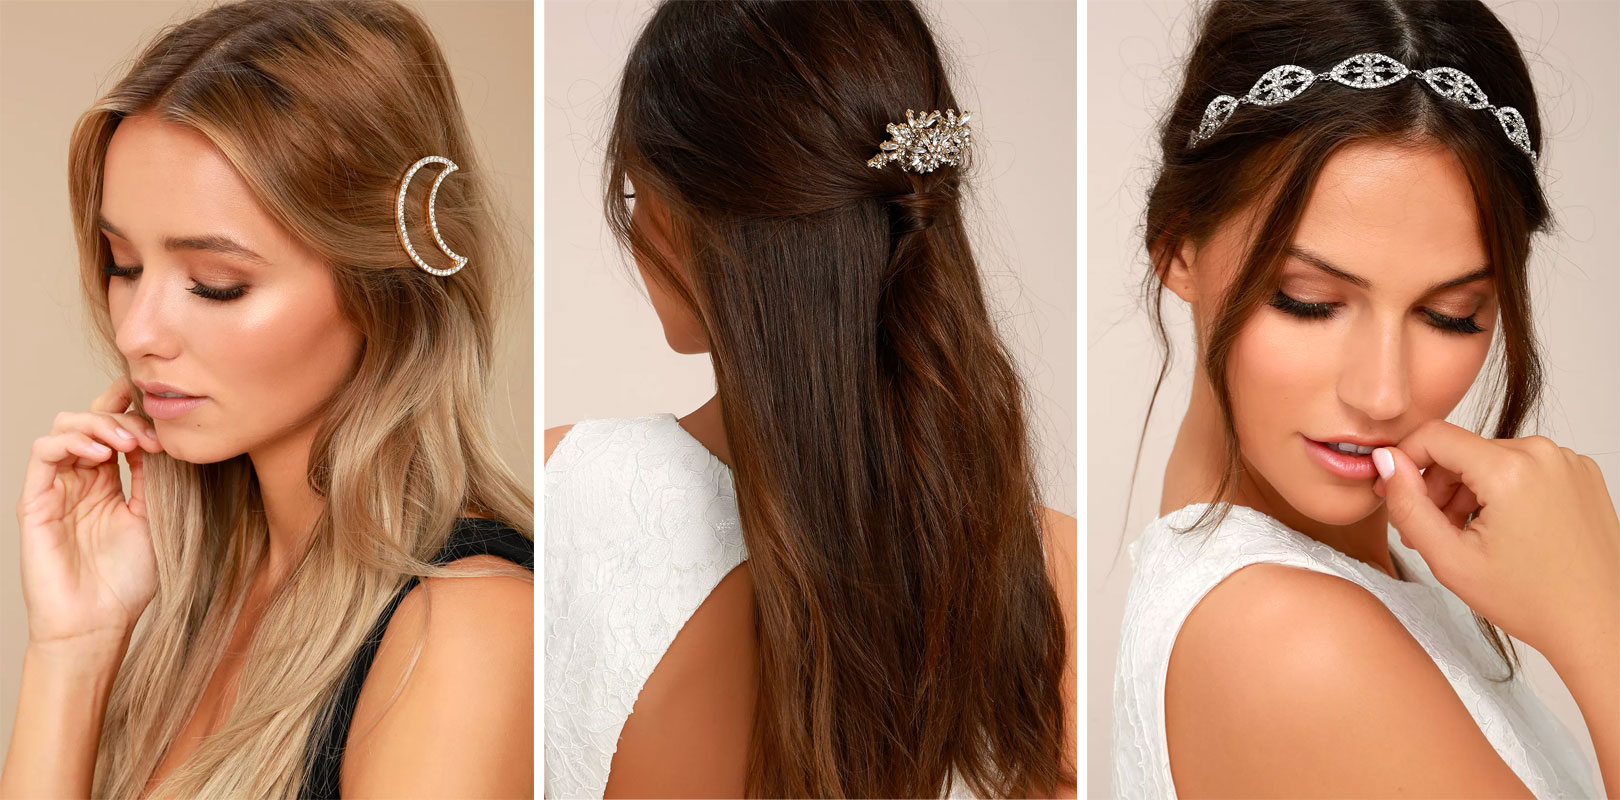 Homecoming Accessories: Hair